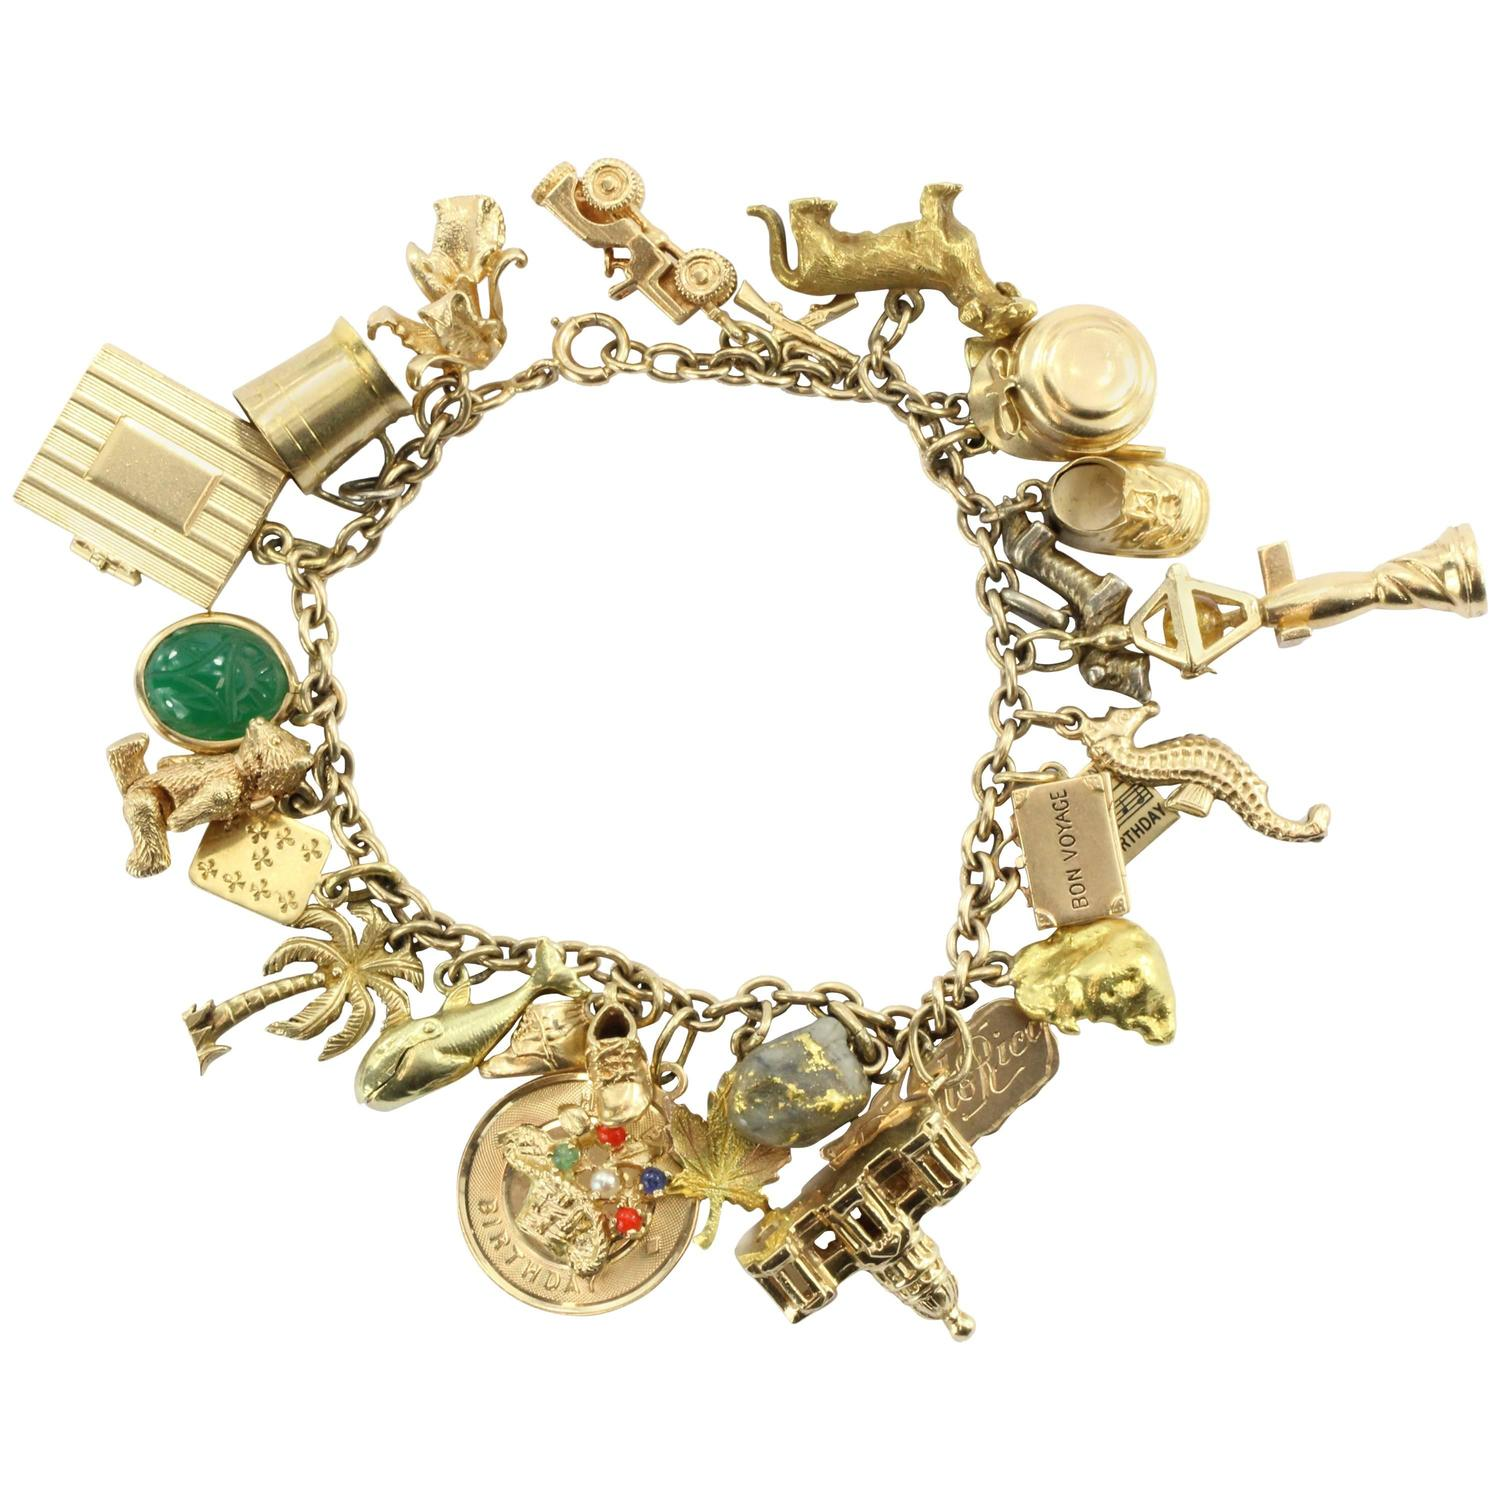 1940s Gold Charm Bracelet with Cartier and Tiffany and Co Charms